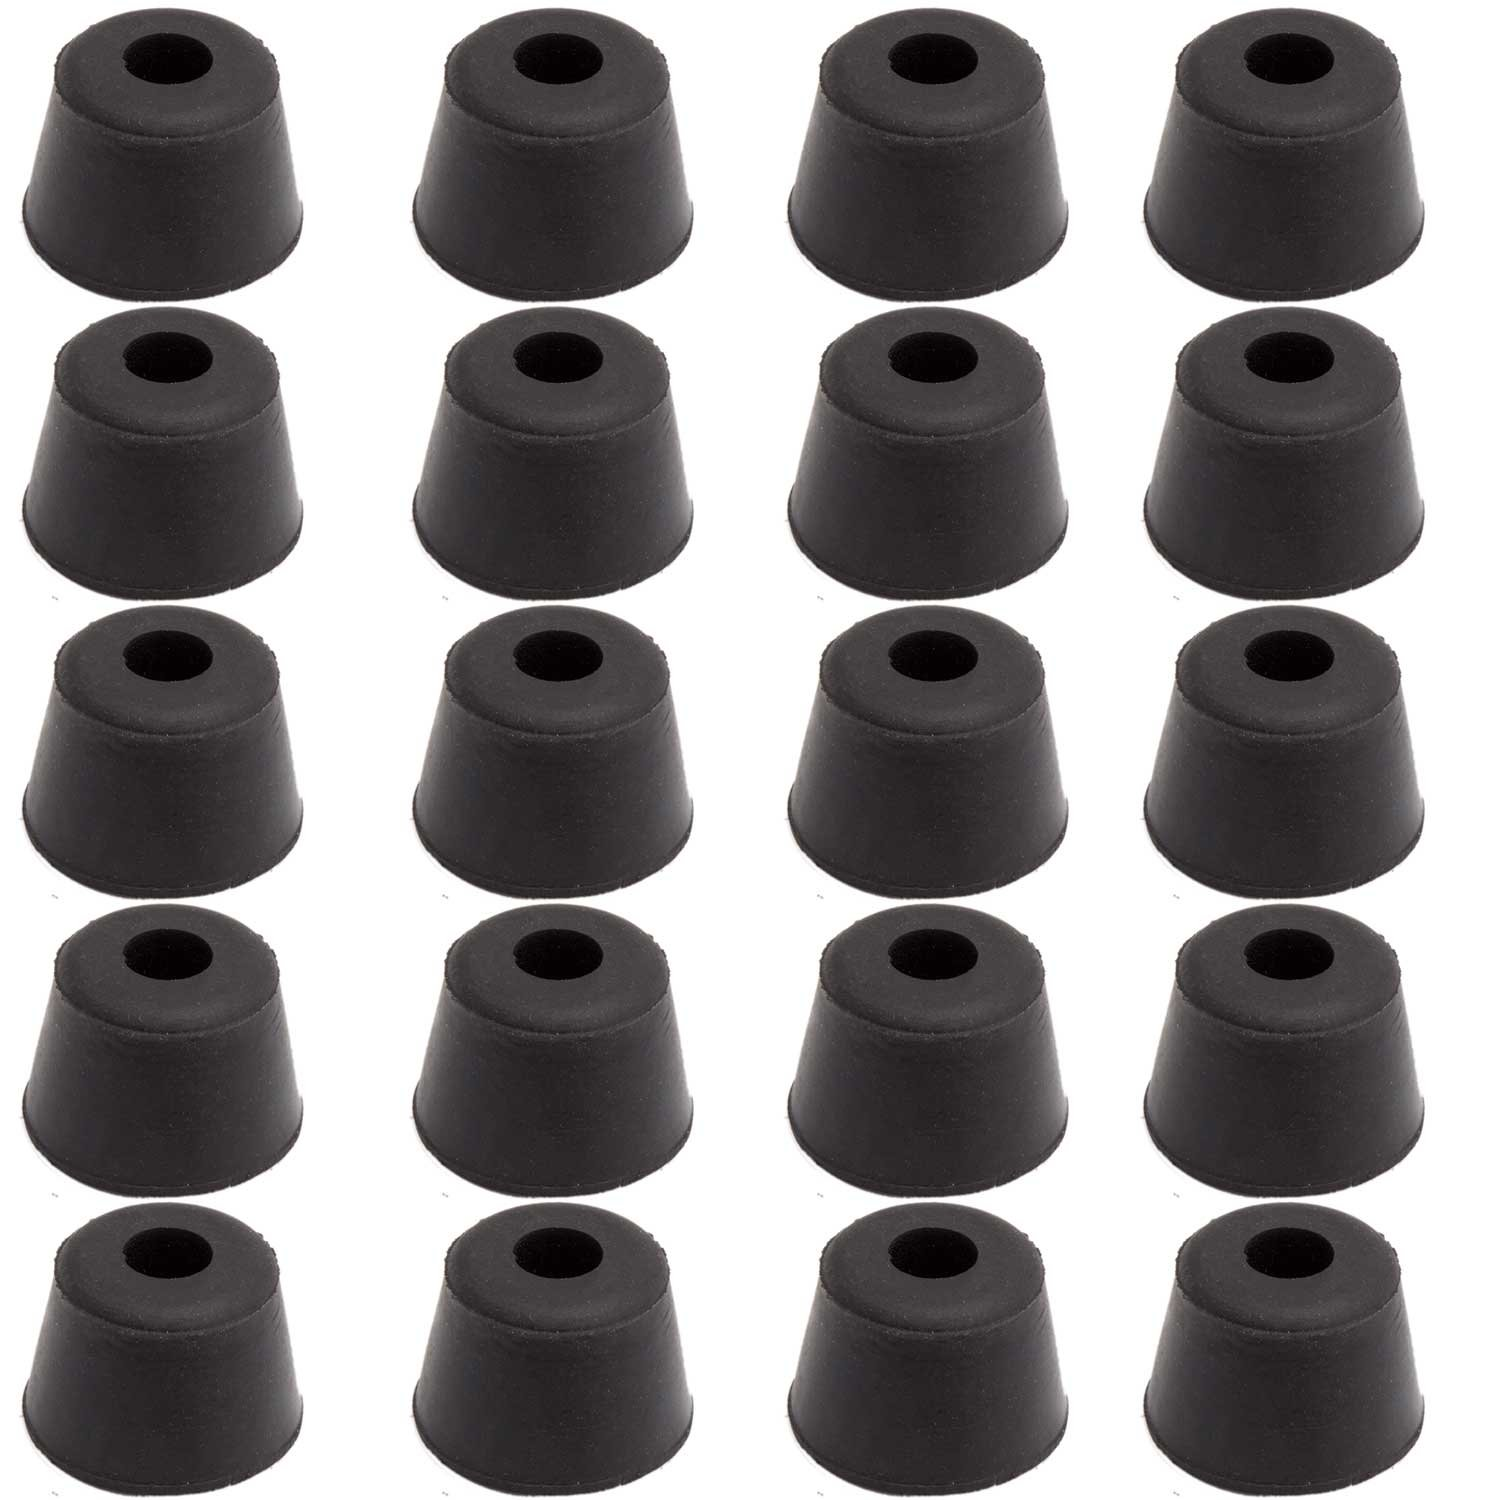 20pcs Round Furniture Pads,ULIFESTAR Rubber Furniture Feet Glides Sliders Carpet Saver Hardwood Floor Protectors Surface Protection for Chair Table Leg Caps Non Slip Furniture Grippers Black 27mm